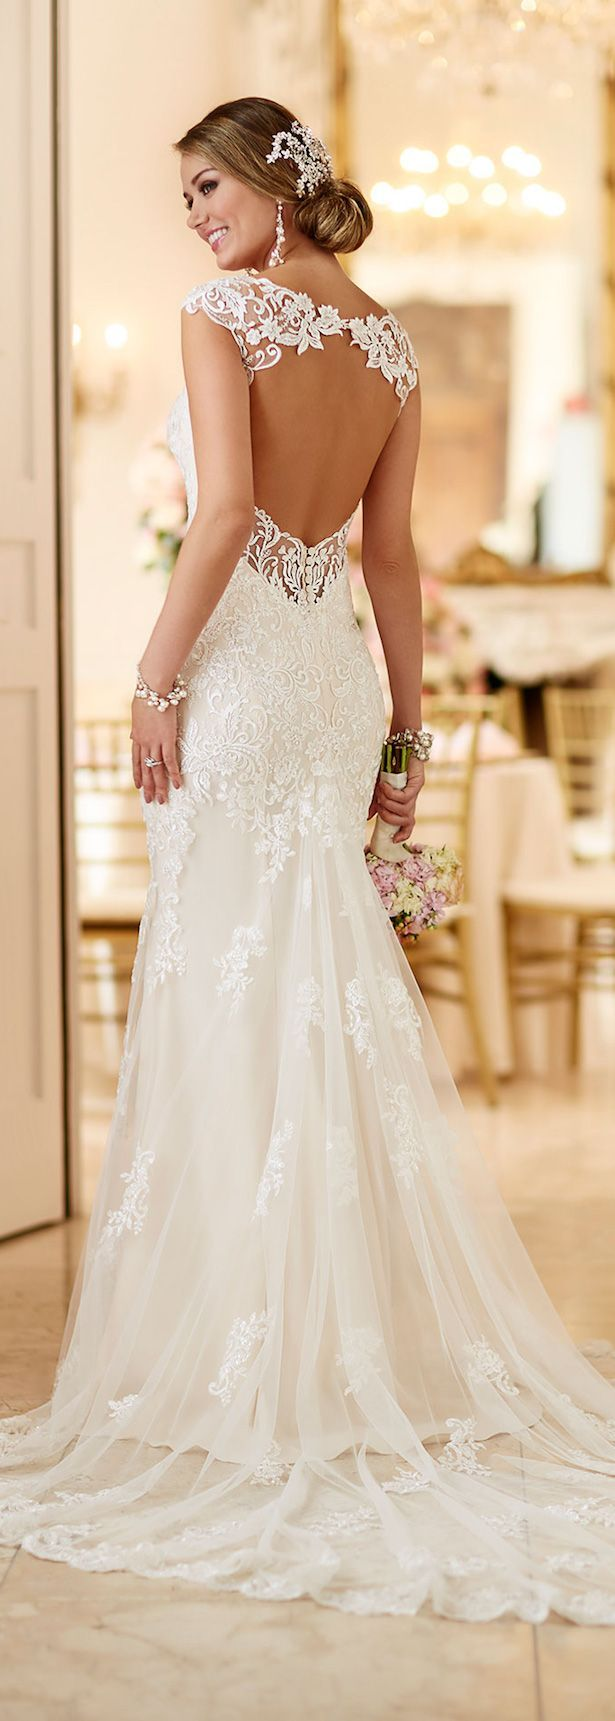 Luxurious Gold Wedding Gown | Wedding Photography